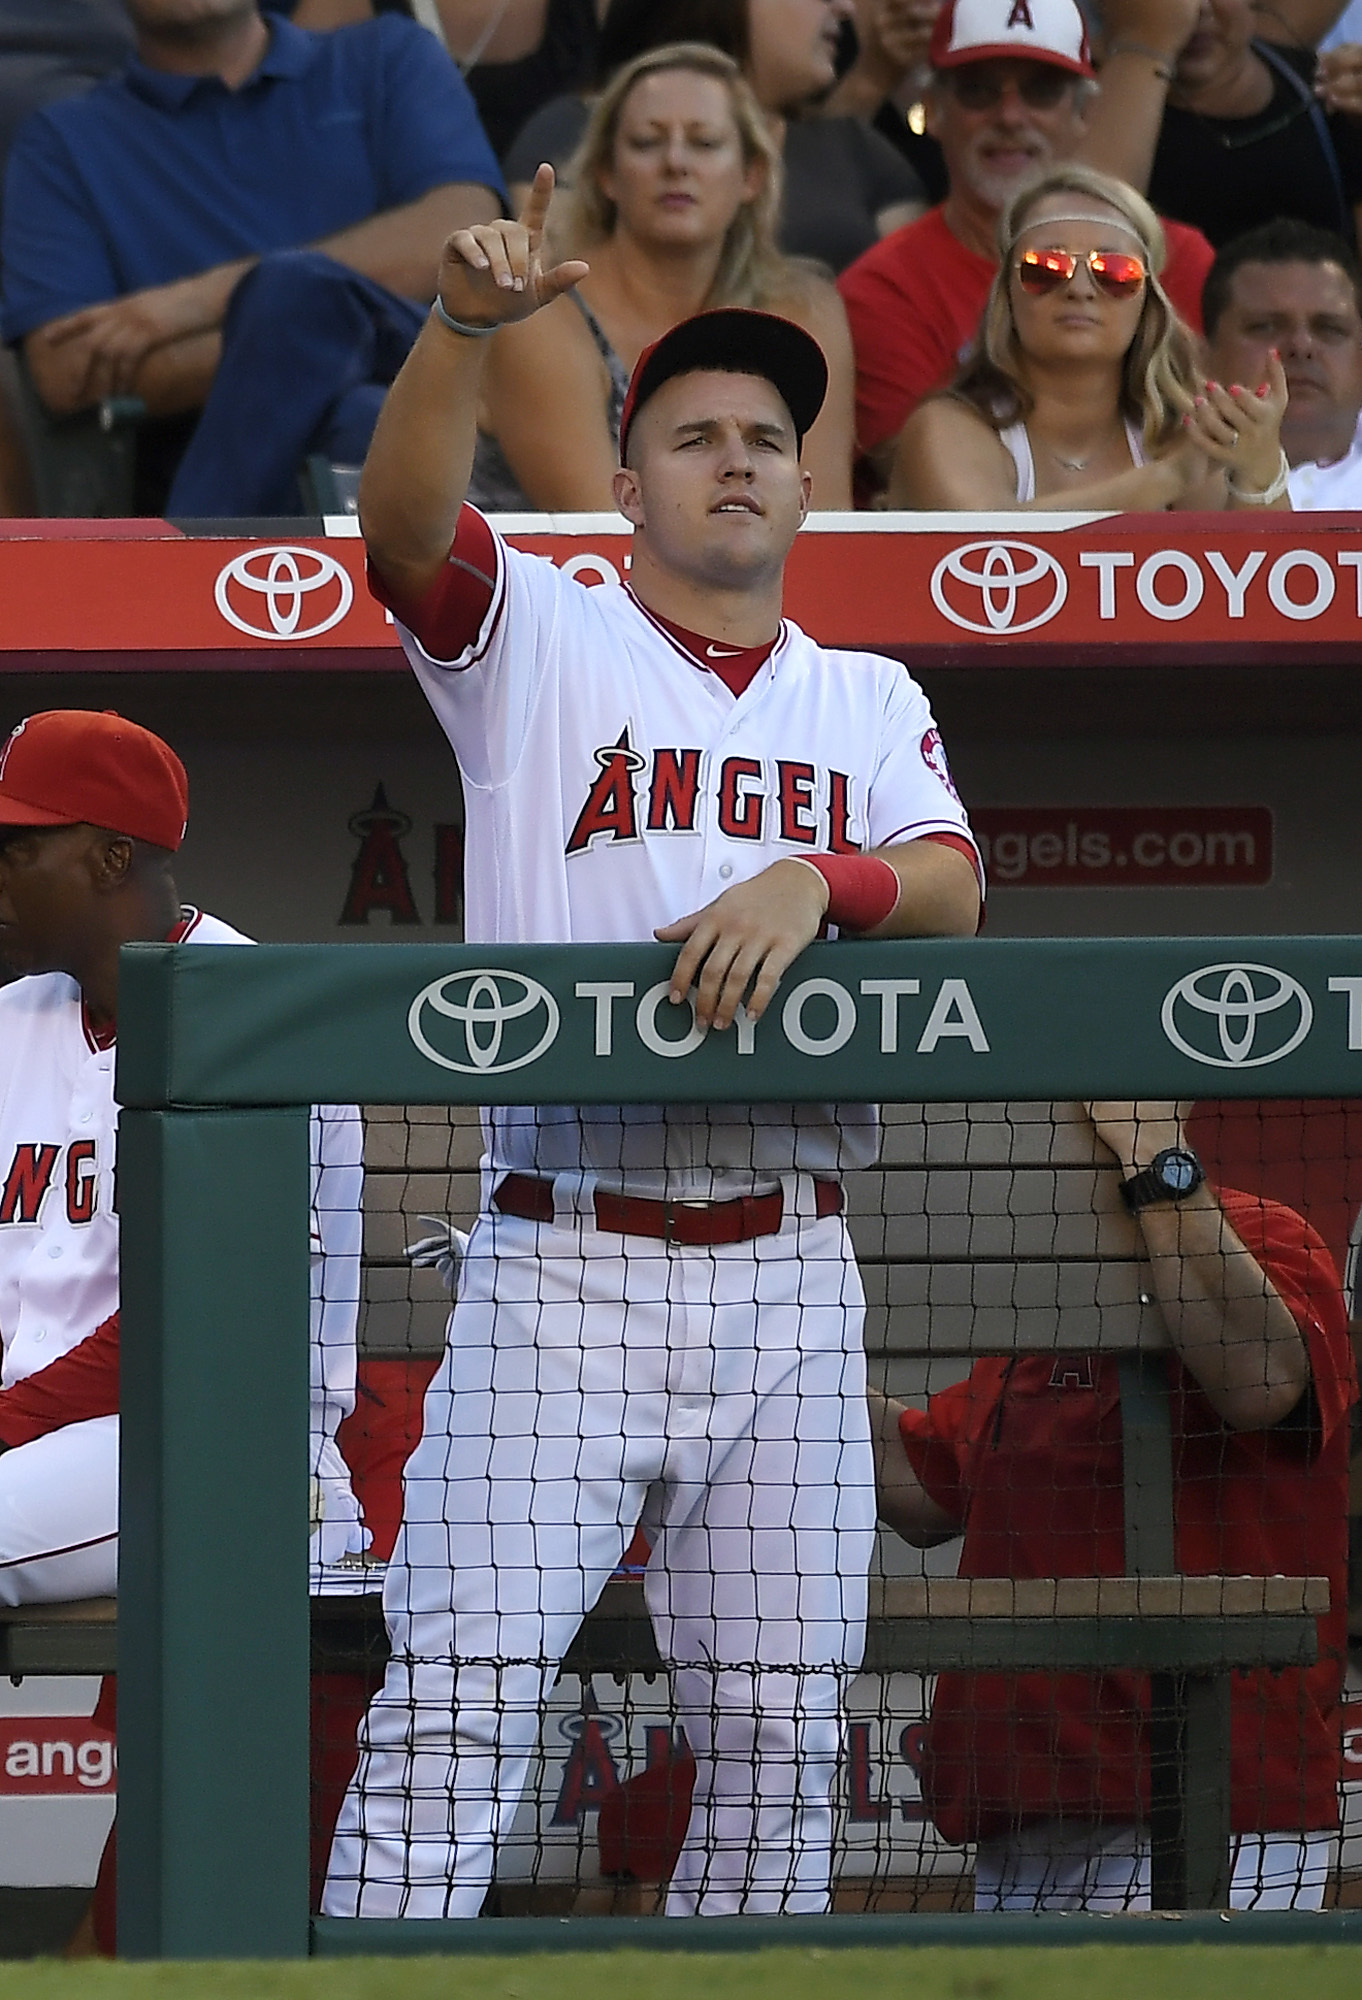 Los Angeles Angels' Mike Trout gestures from the dugout toward first base after C.J. Cron hit an RBI single during the eighth inning of a baseball game against the Cincinnati Reds, Wednesday, Aug. 31, 2016, in Anaheim, Calif. (AP Photo/Mark J. Terrill)